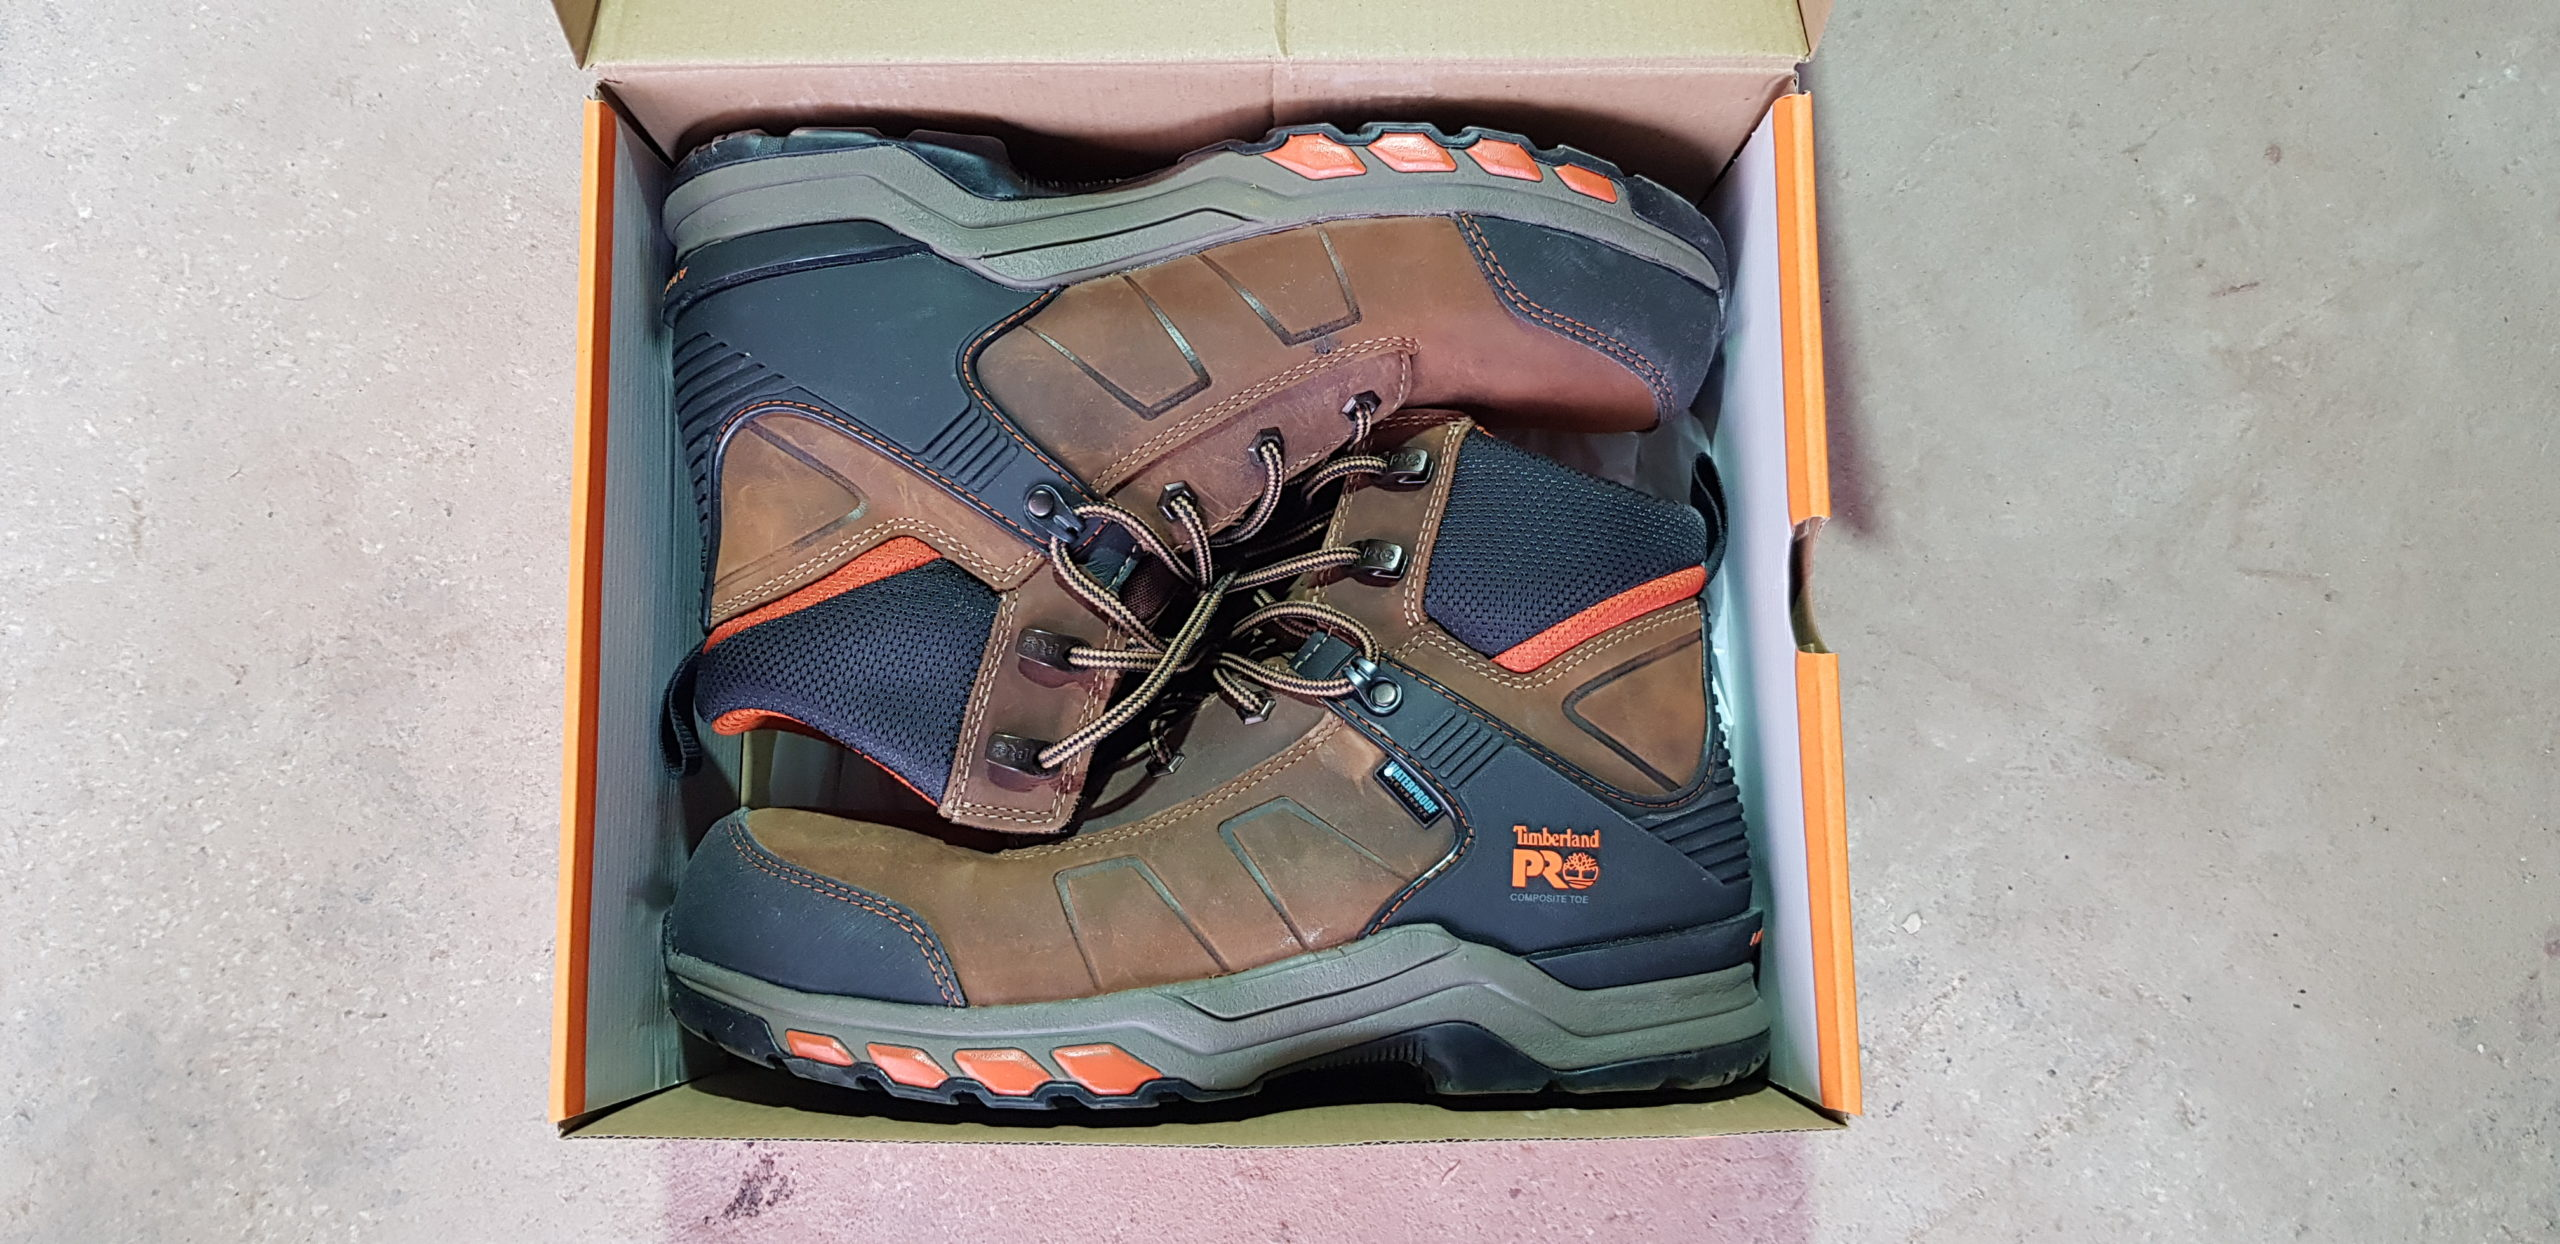 Review: Tibby Singh tries the Timberland PRO hypercharge work boot